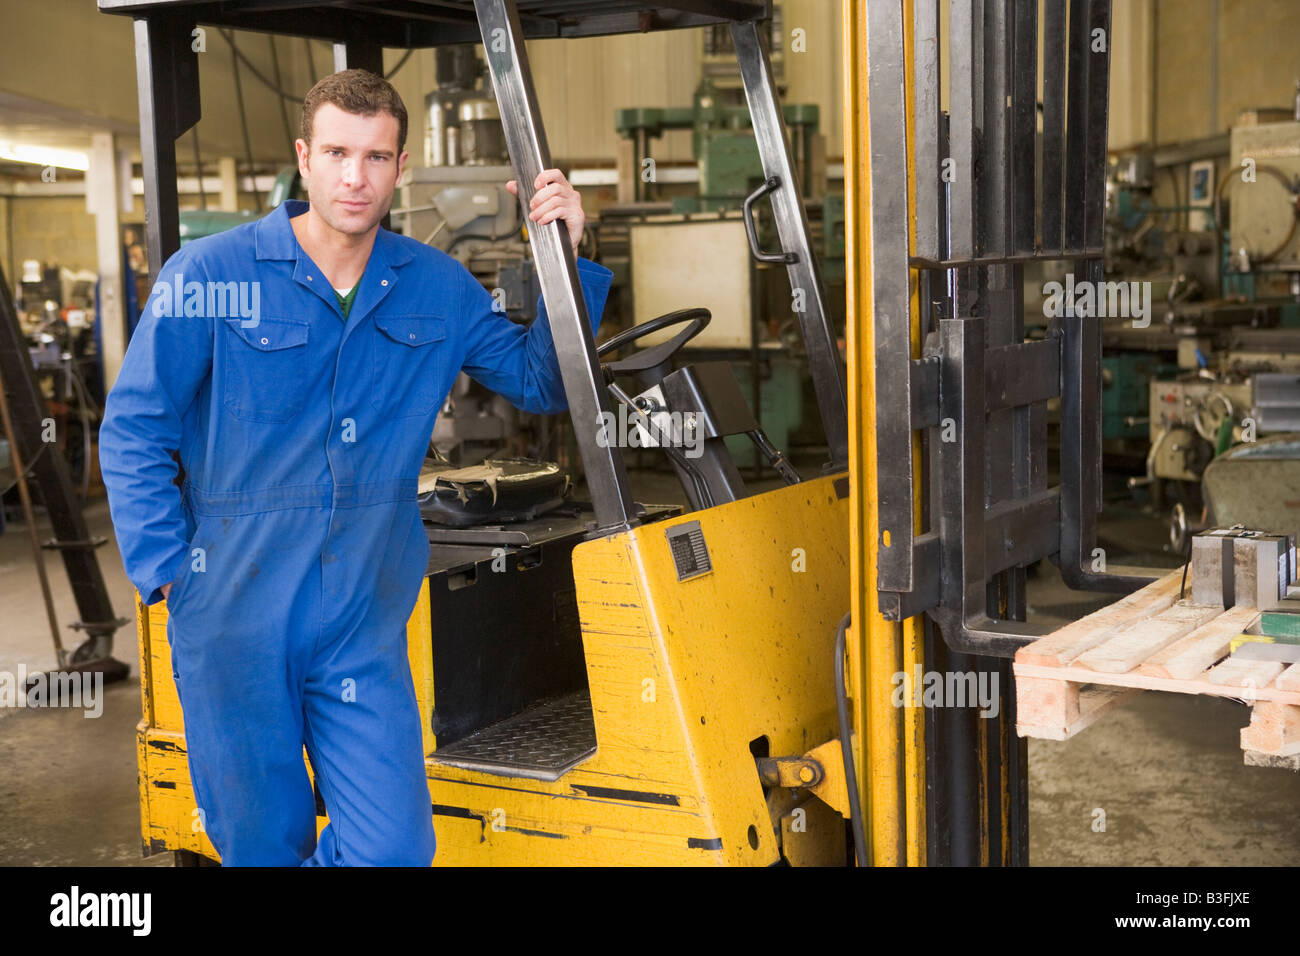 Warehouse worker standing by forklift - Stock Image